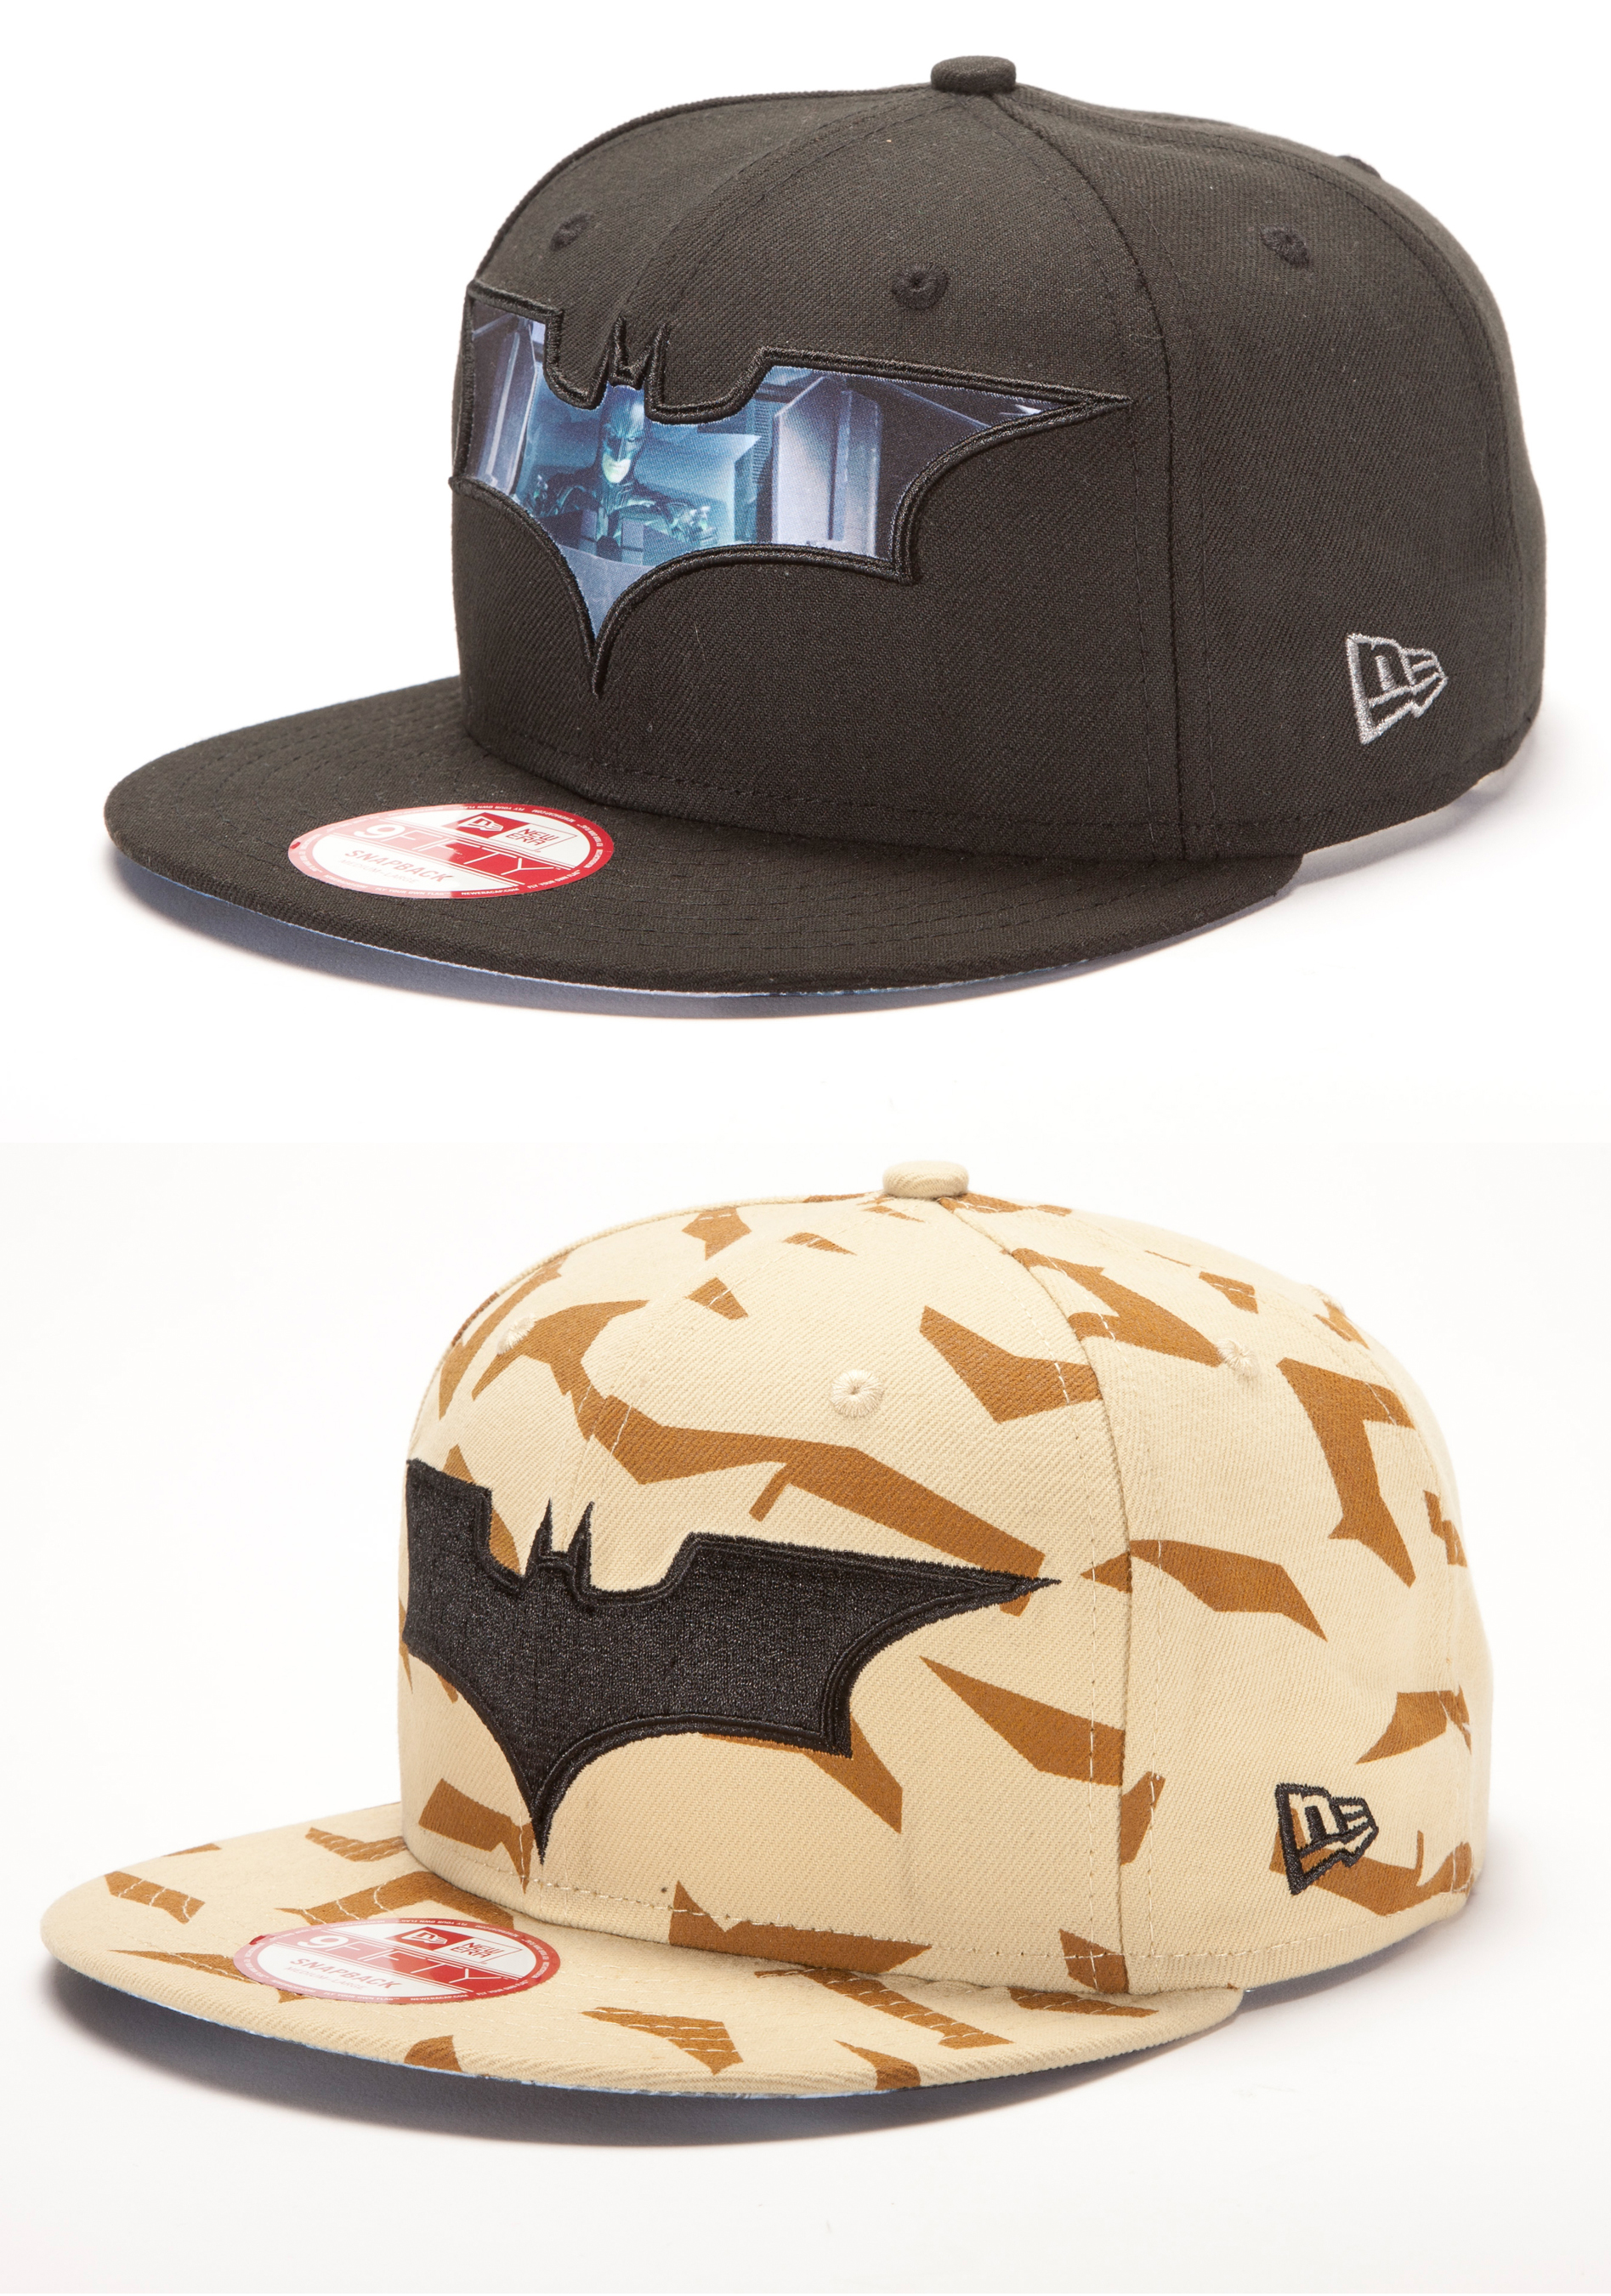 The Dark Knight Rises Hats